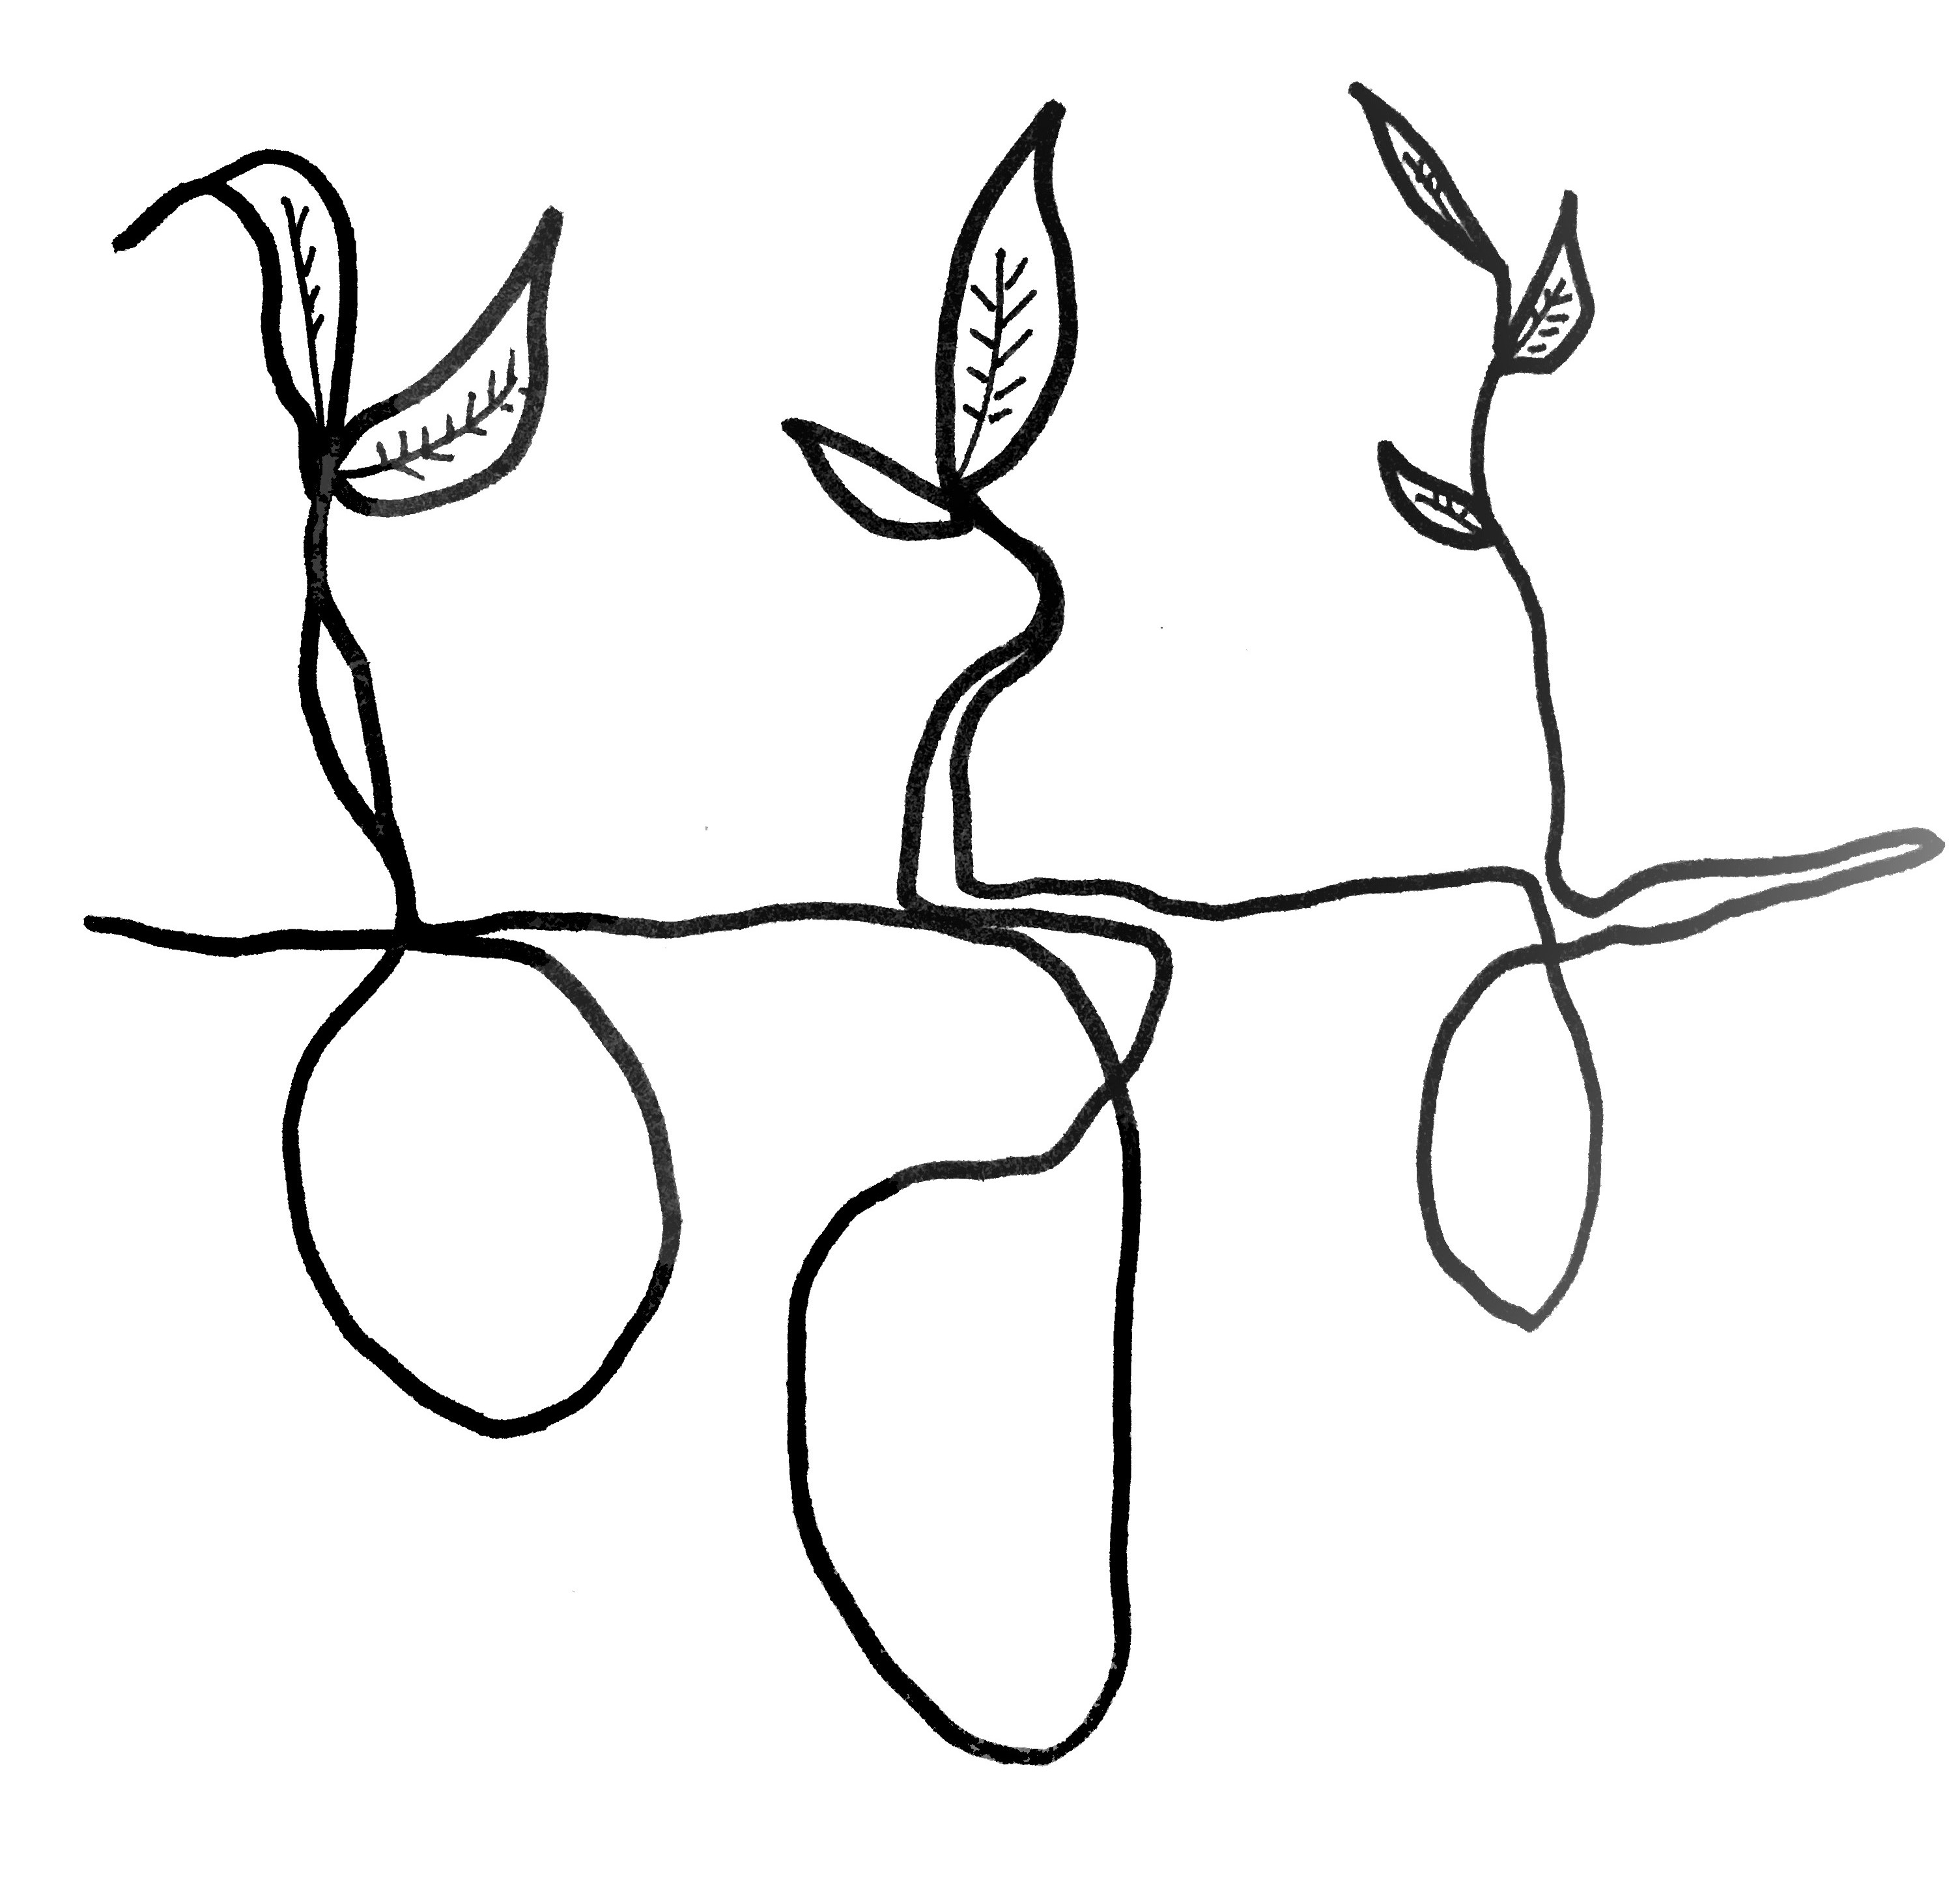 Line drawing of three young sweet potato plants in soil